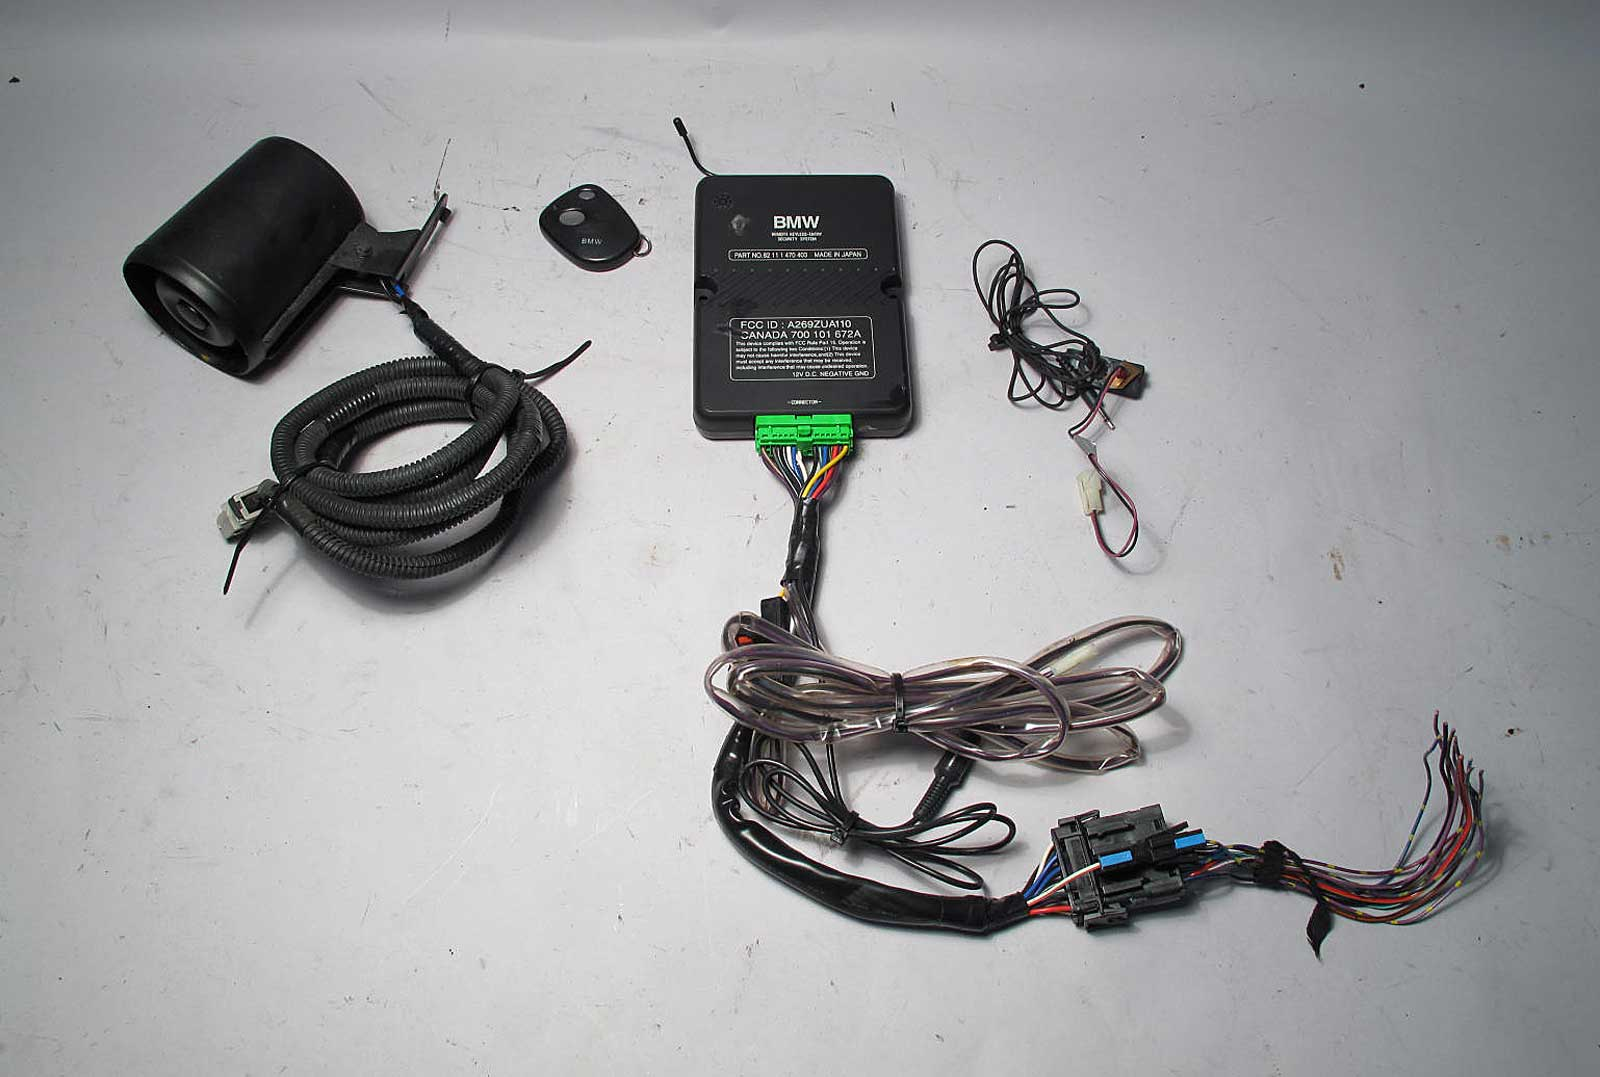 Bmw Z3 Roadster Factory Alarm System Kit With Siren Fob Module 1996 2000 Used Oe Ebay